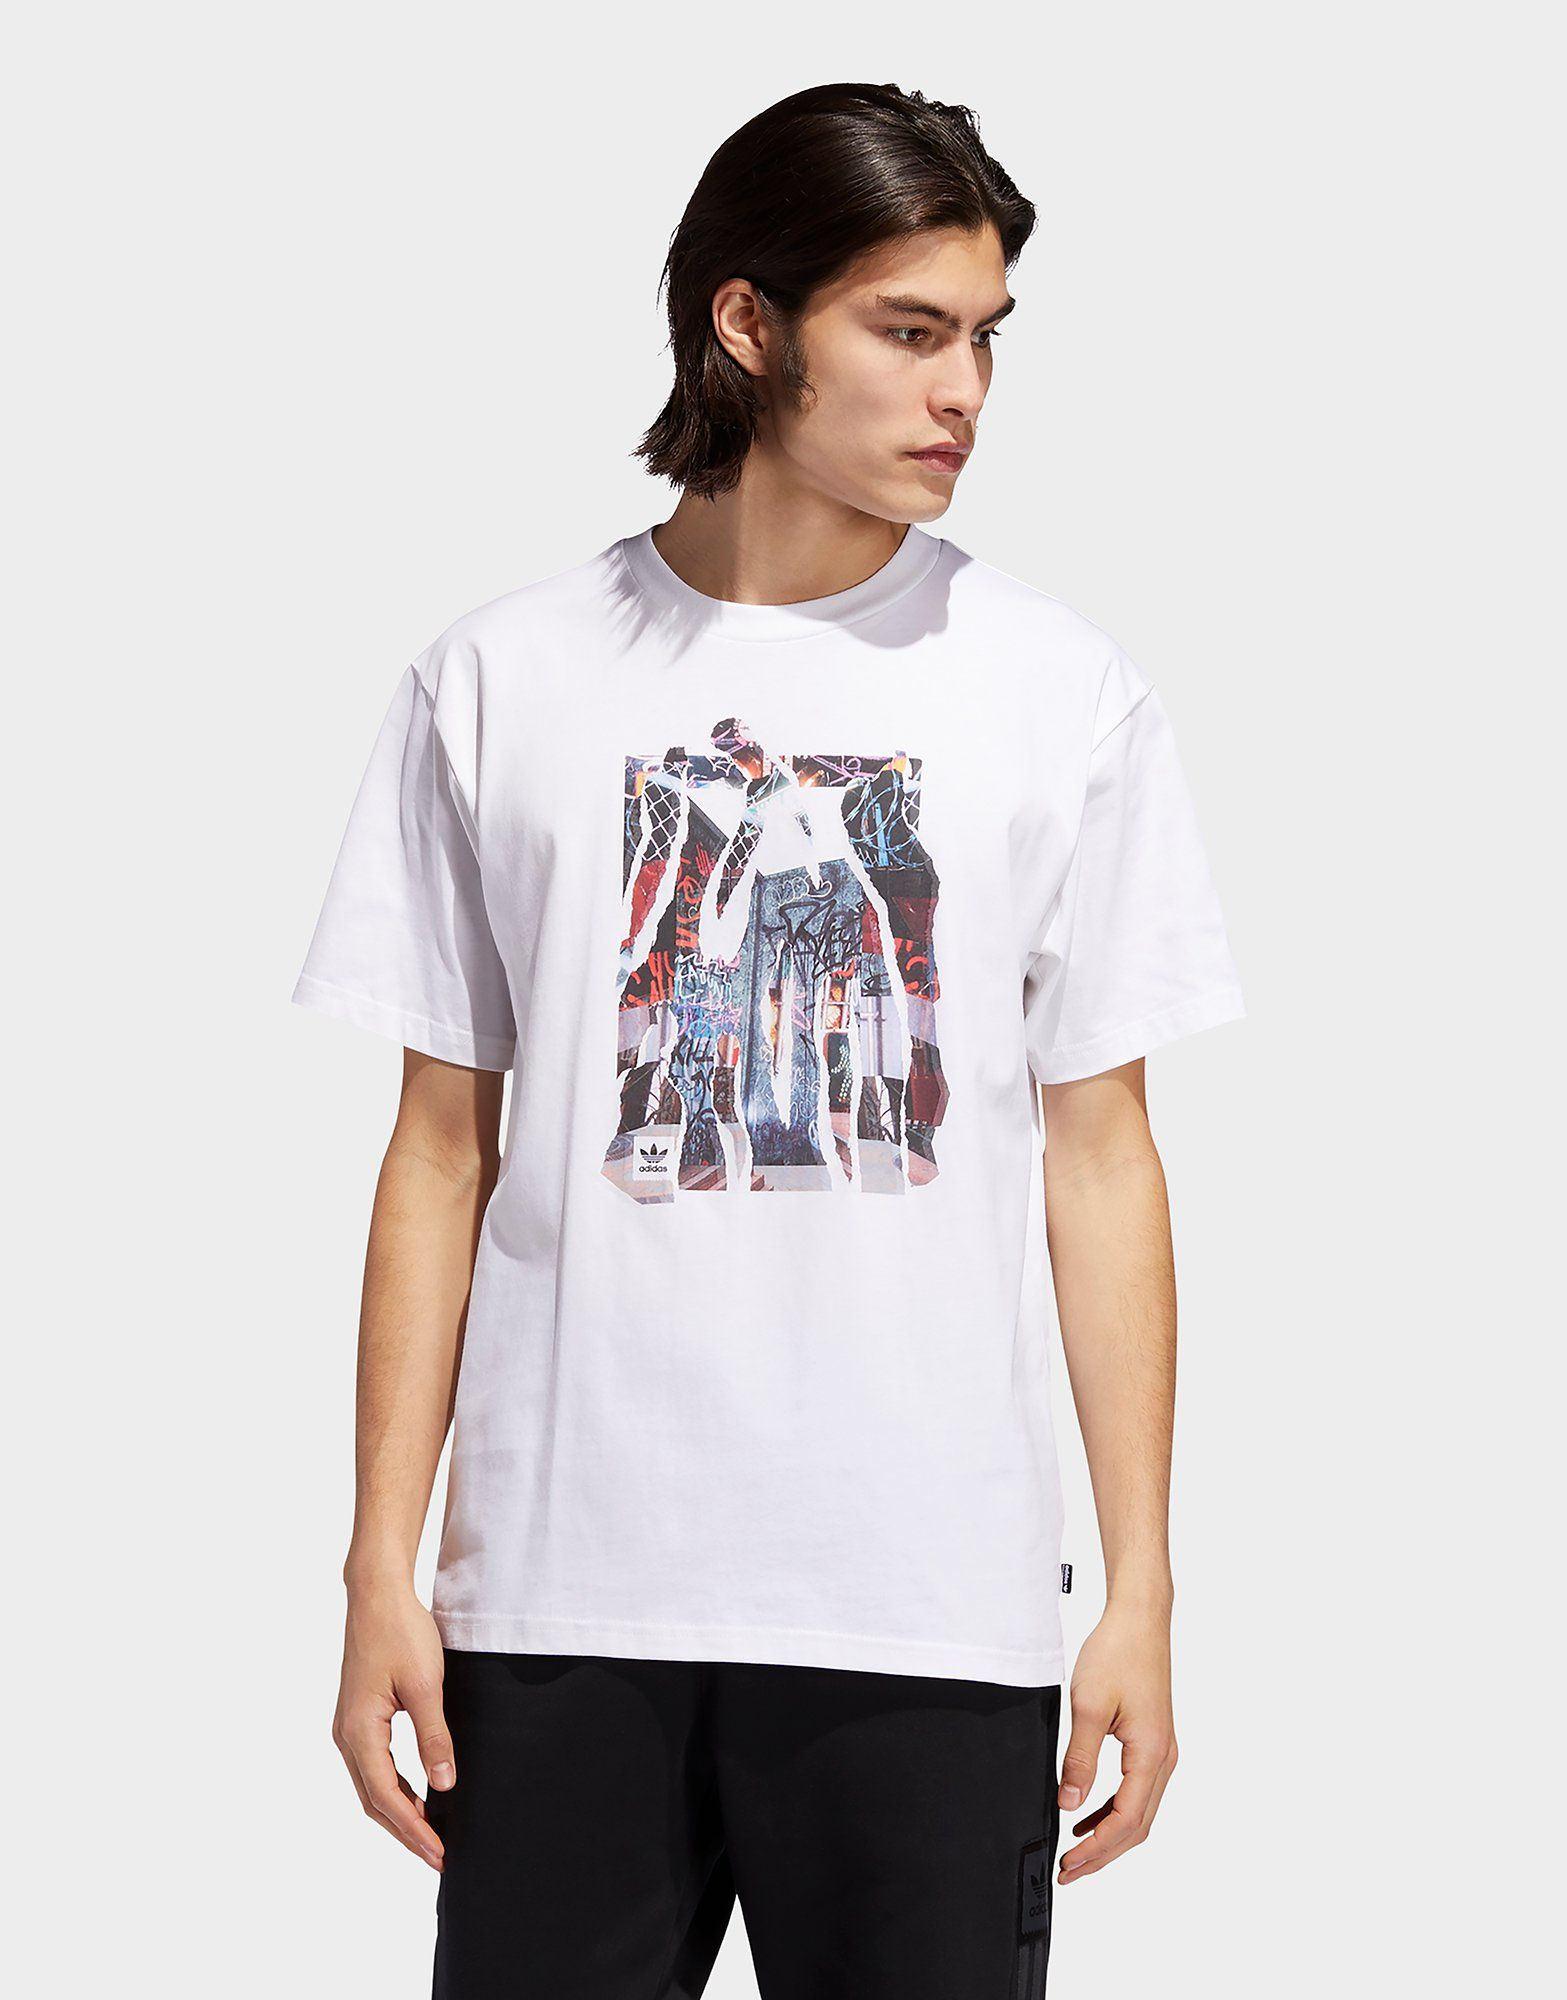 Adidas Originals Photo Media T Shirt by Adidas Originals